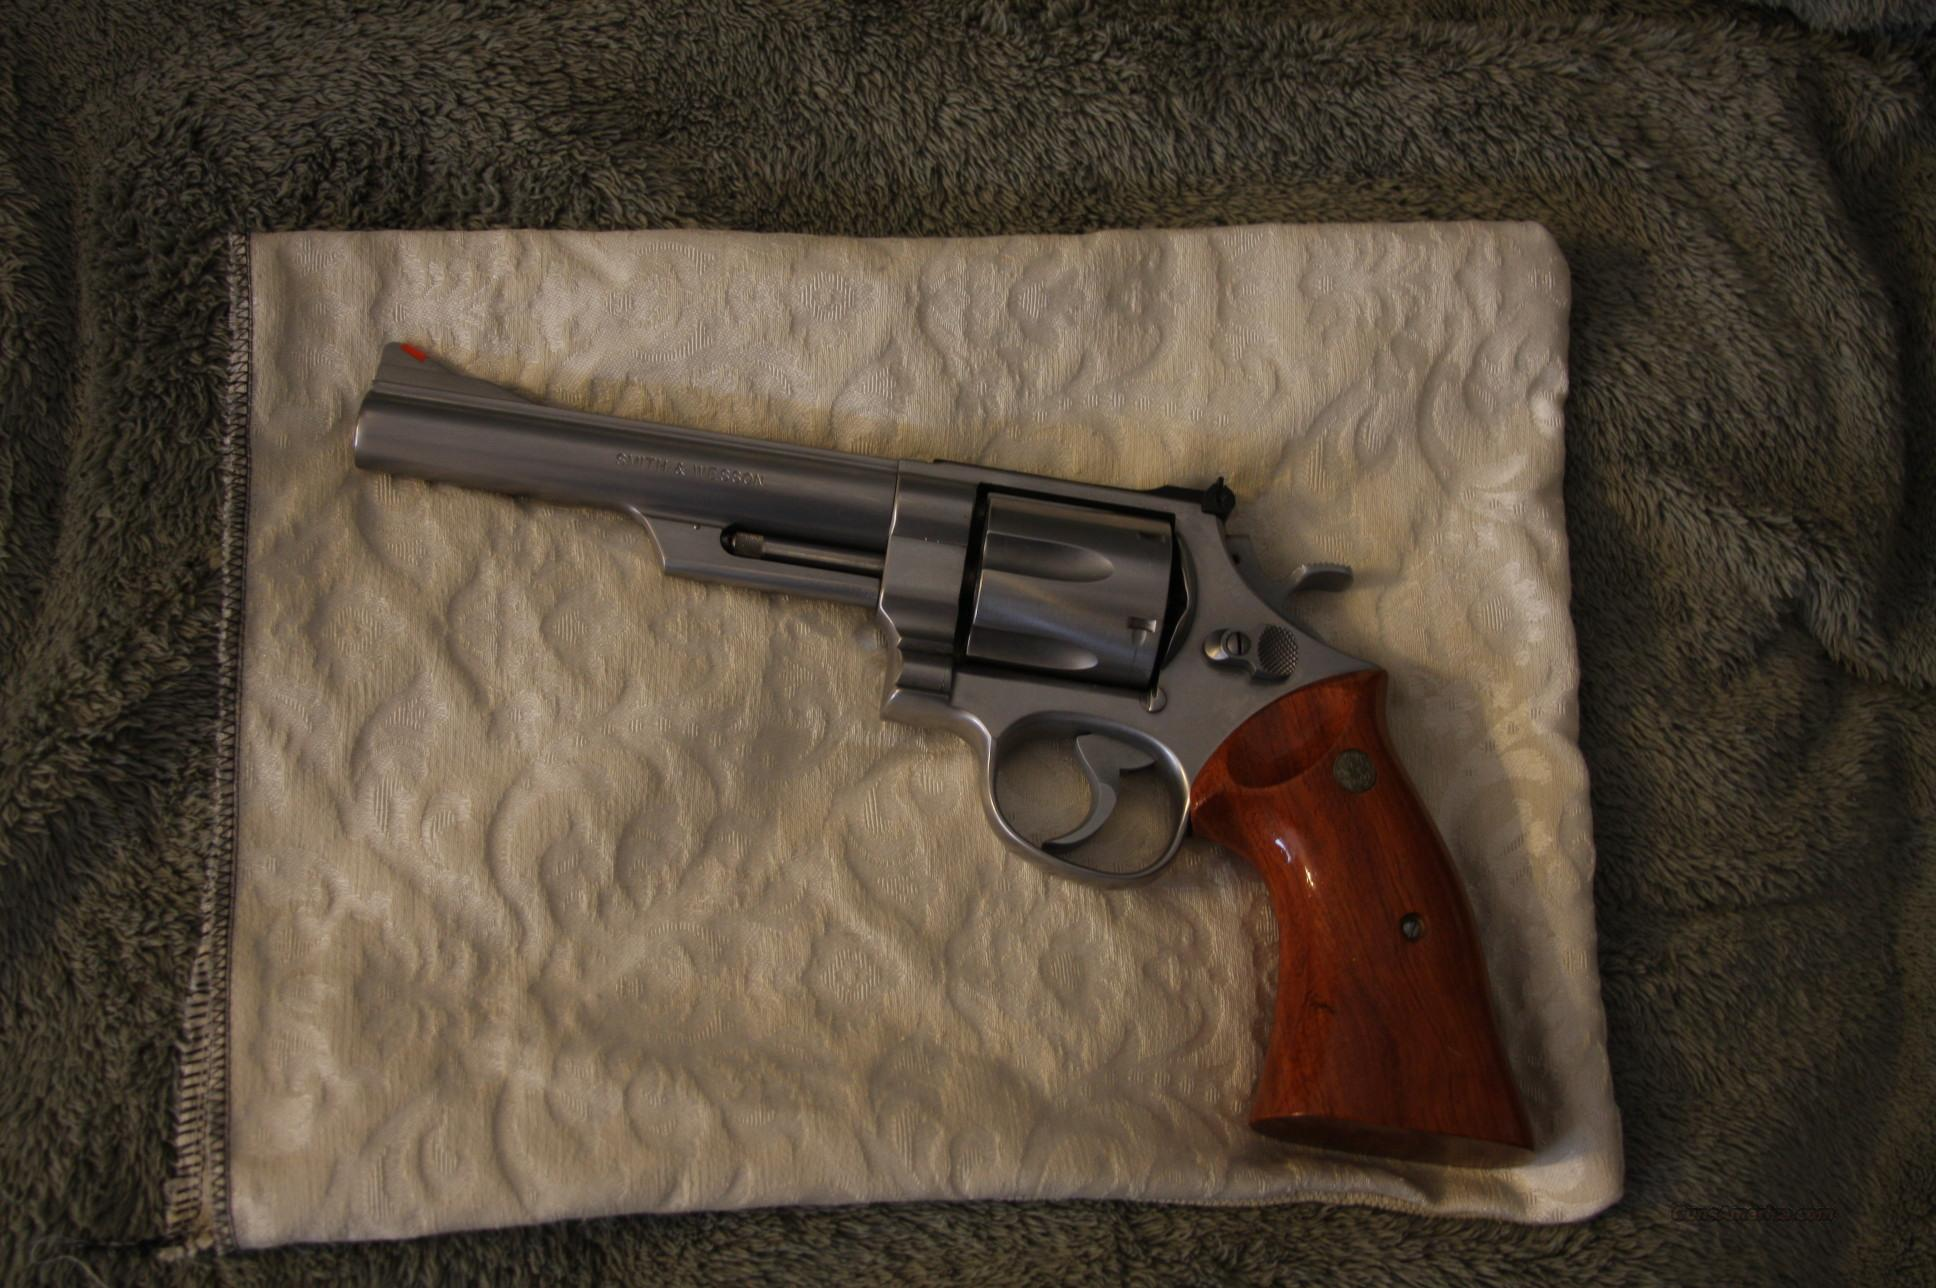 Smith and Wessson Model 629-1  Guns > Pistols > Smith & Wesson Revolvers > Model 629